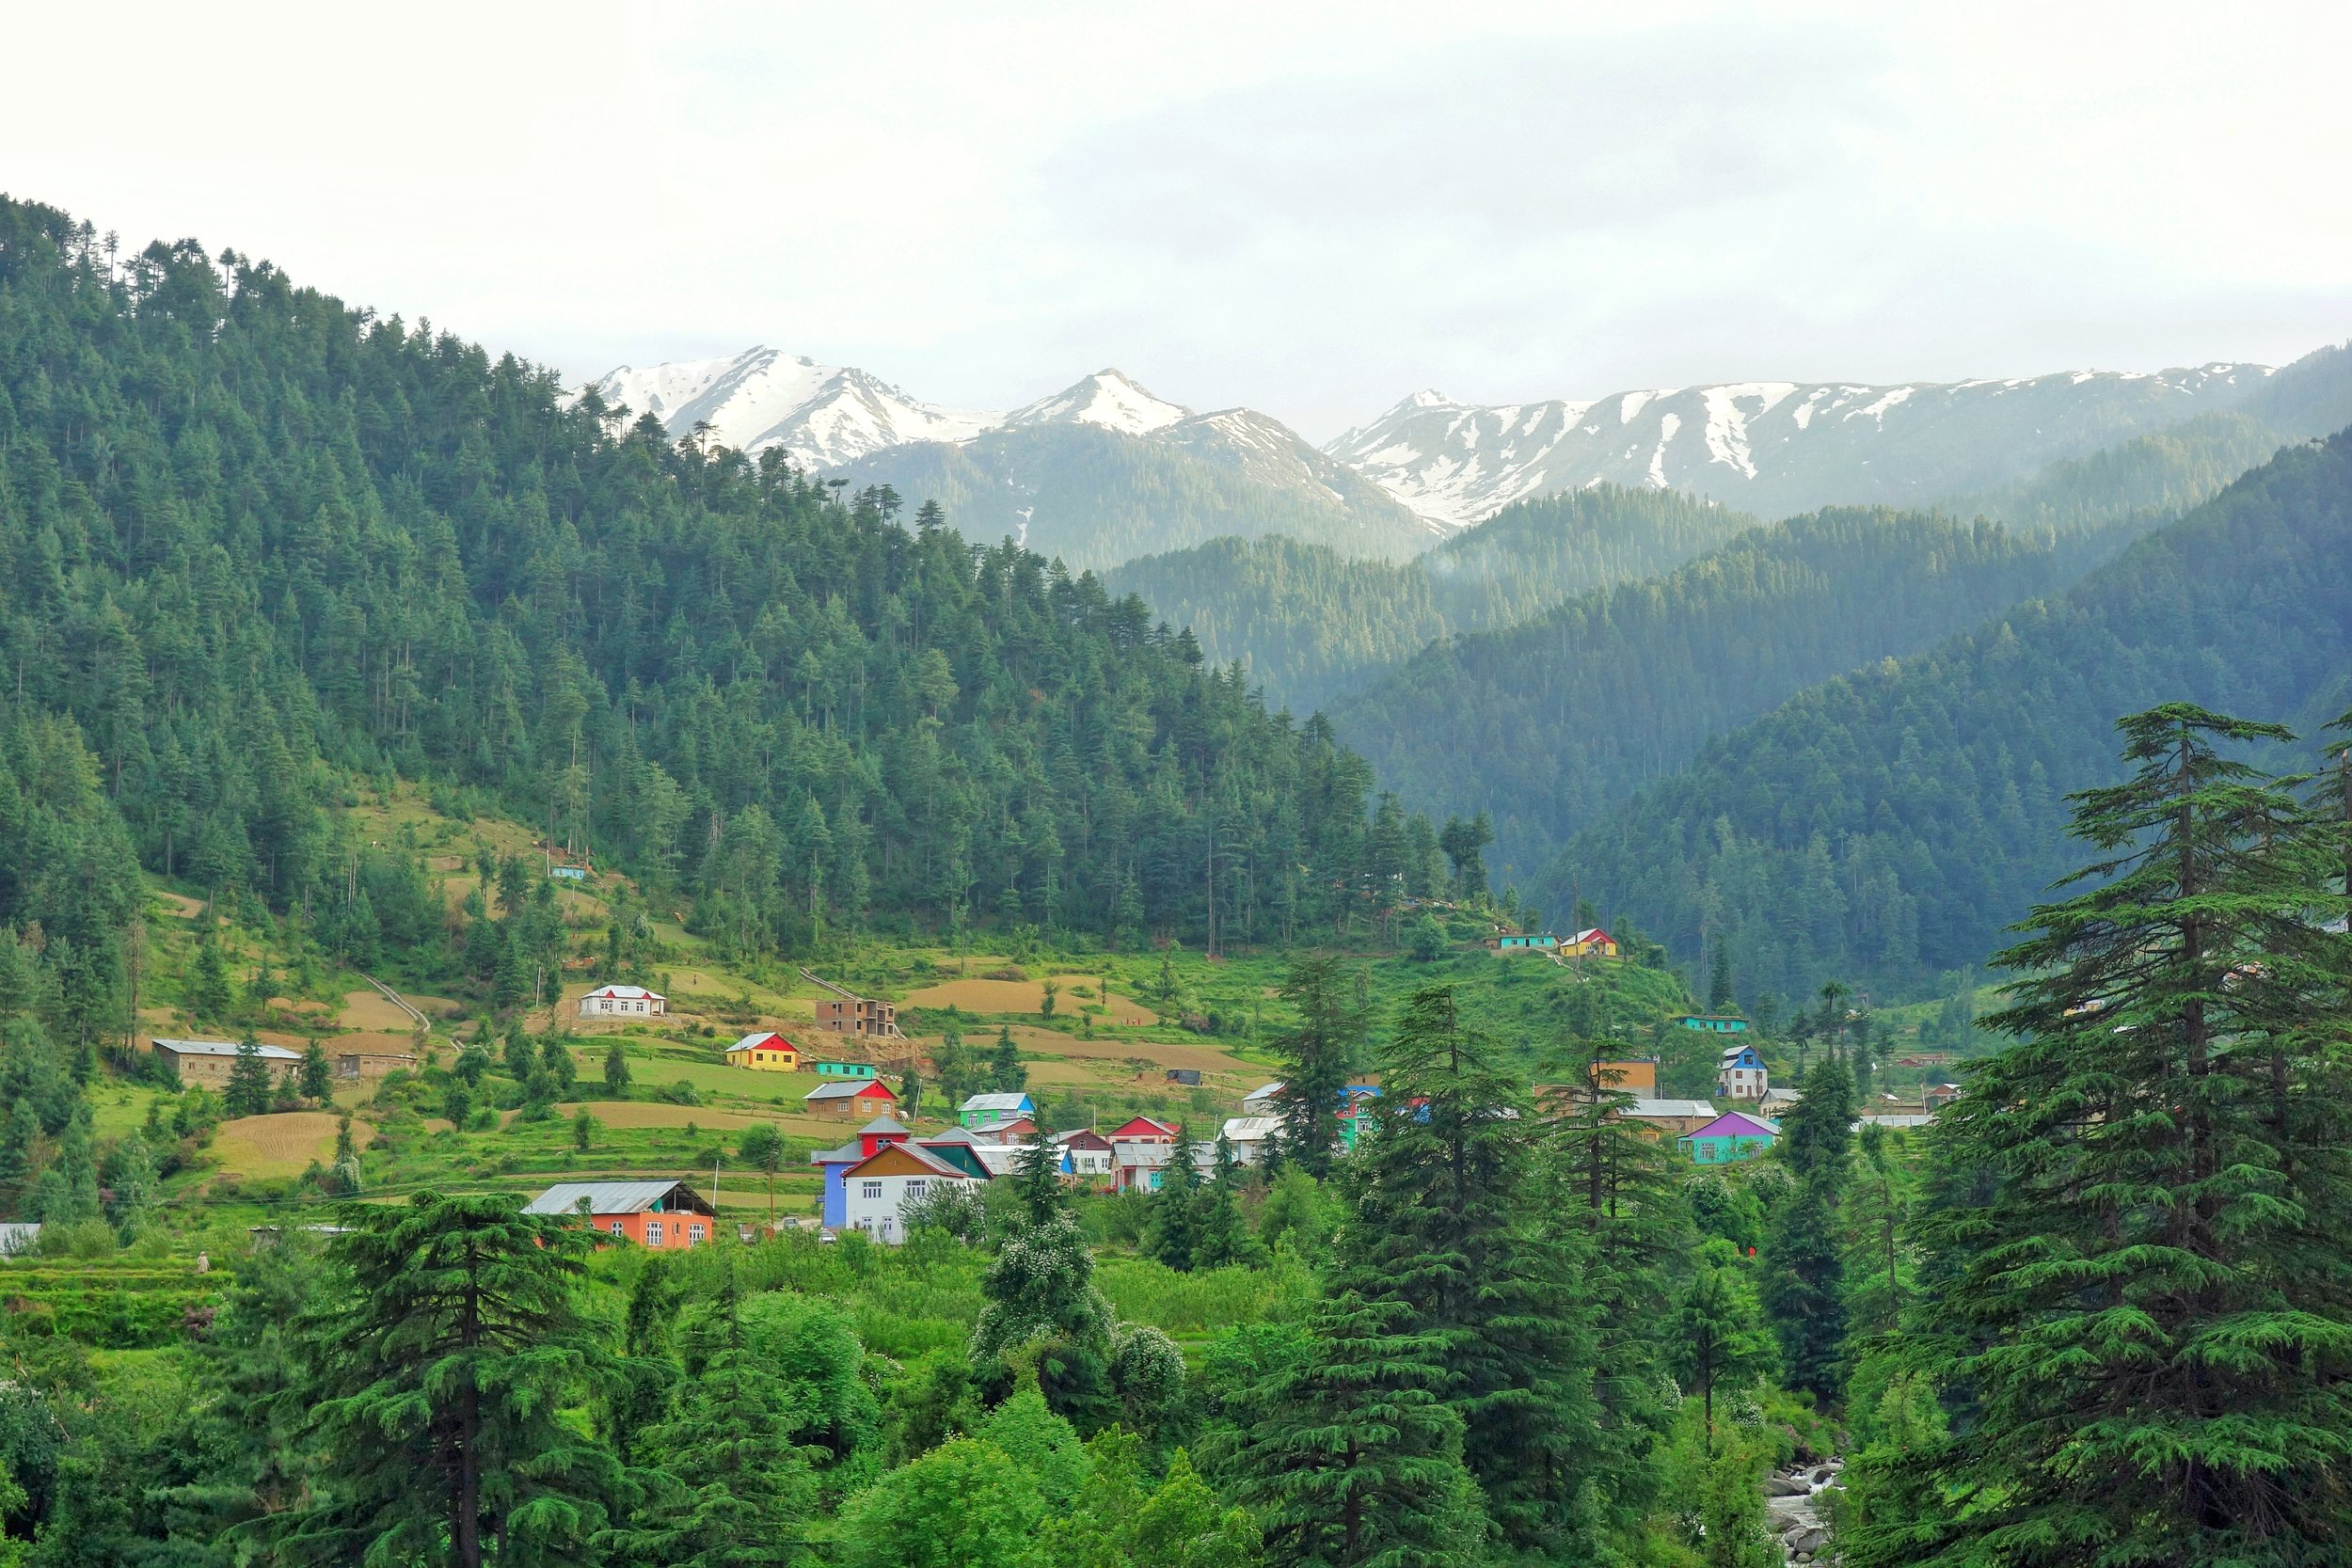 A Village on the outskirts of Bhaderwah